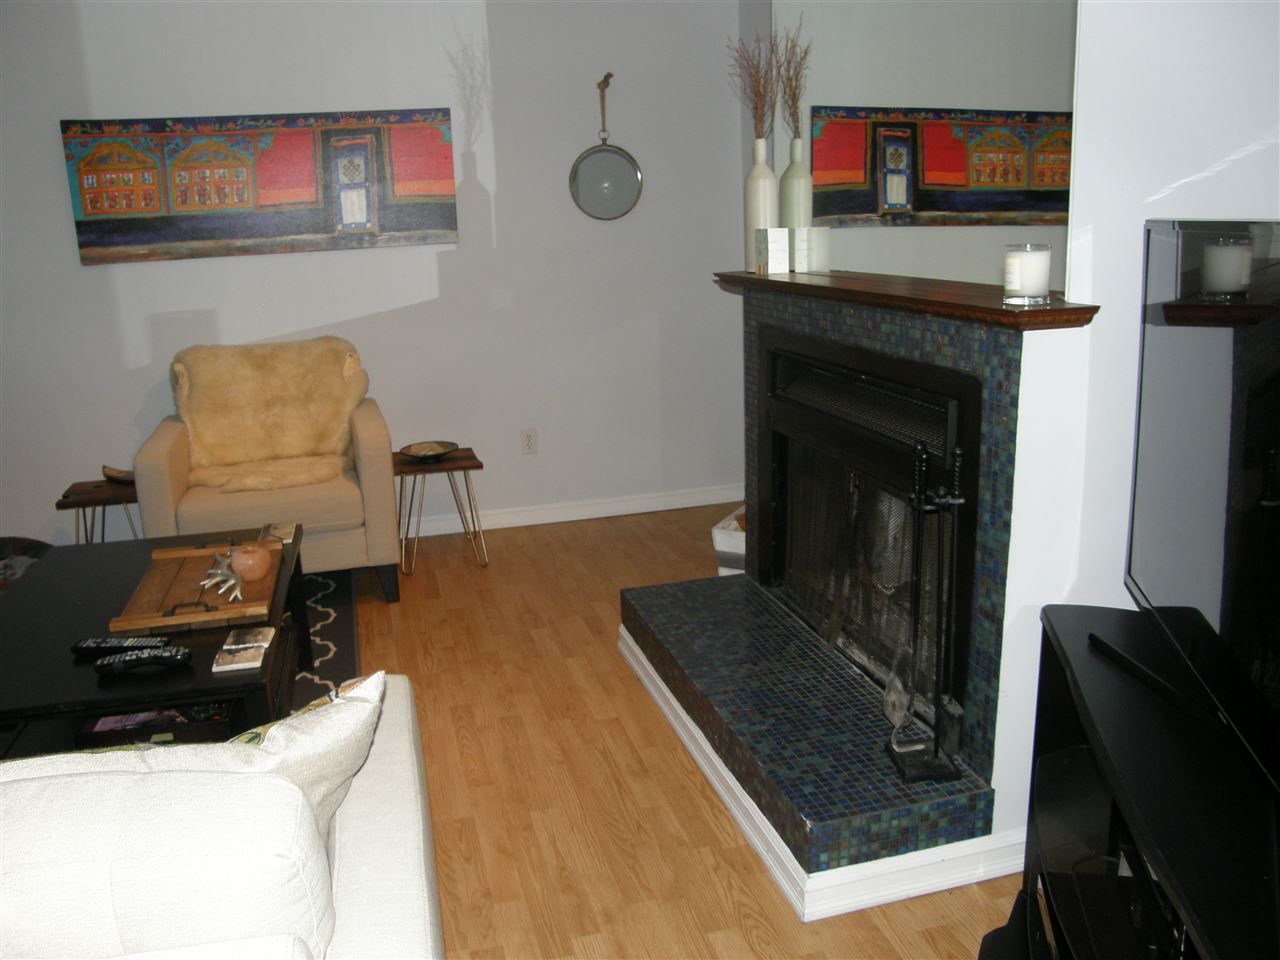 Photo 14: Photos: 788 CALVERHALL Street in North Vancouver: Calverhall House for sale : MLS® # R2245708